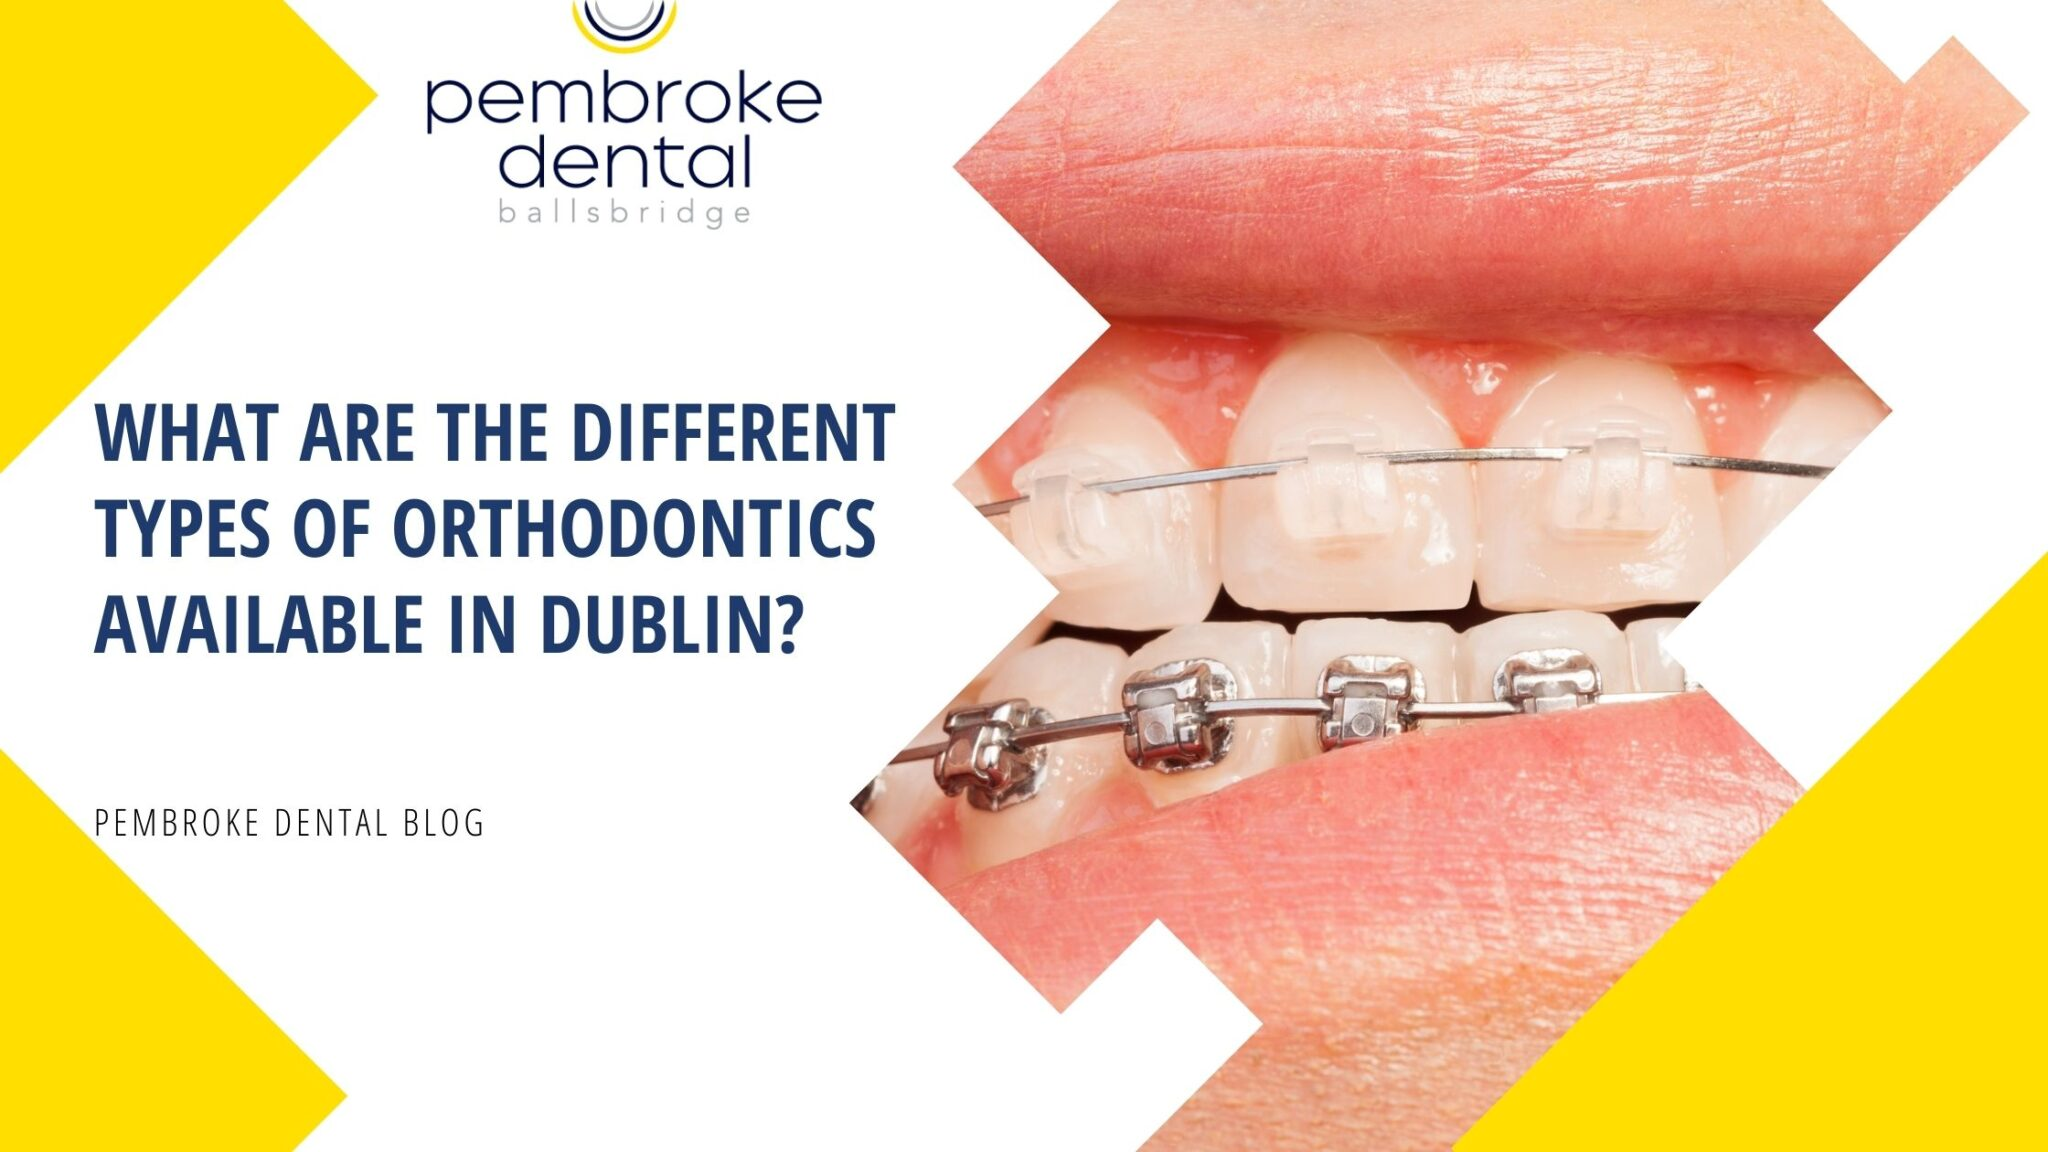 What are the different types of orthodontics available in Dublin